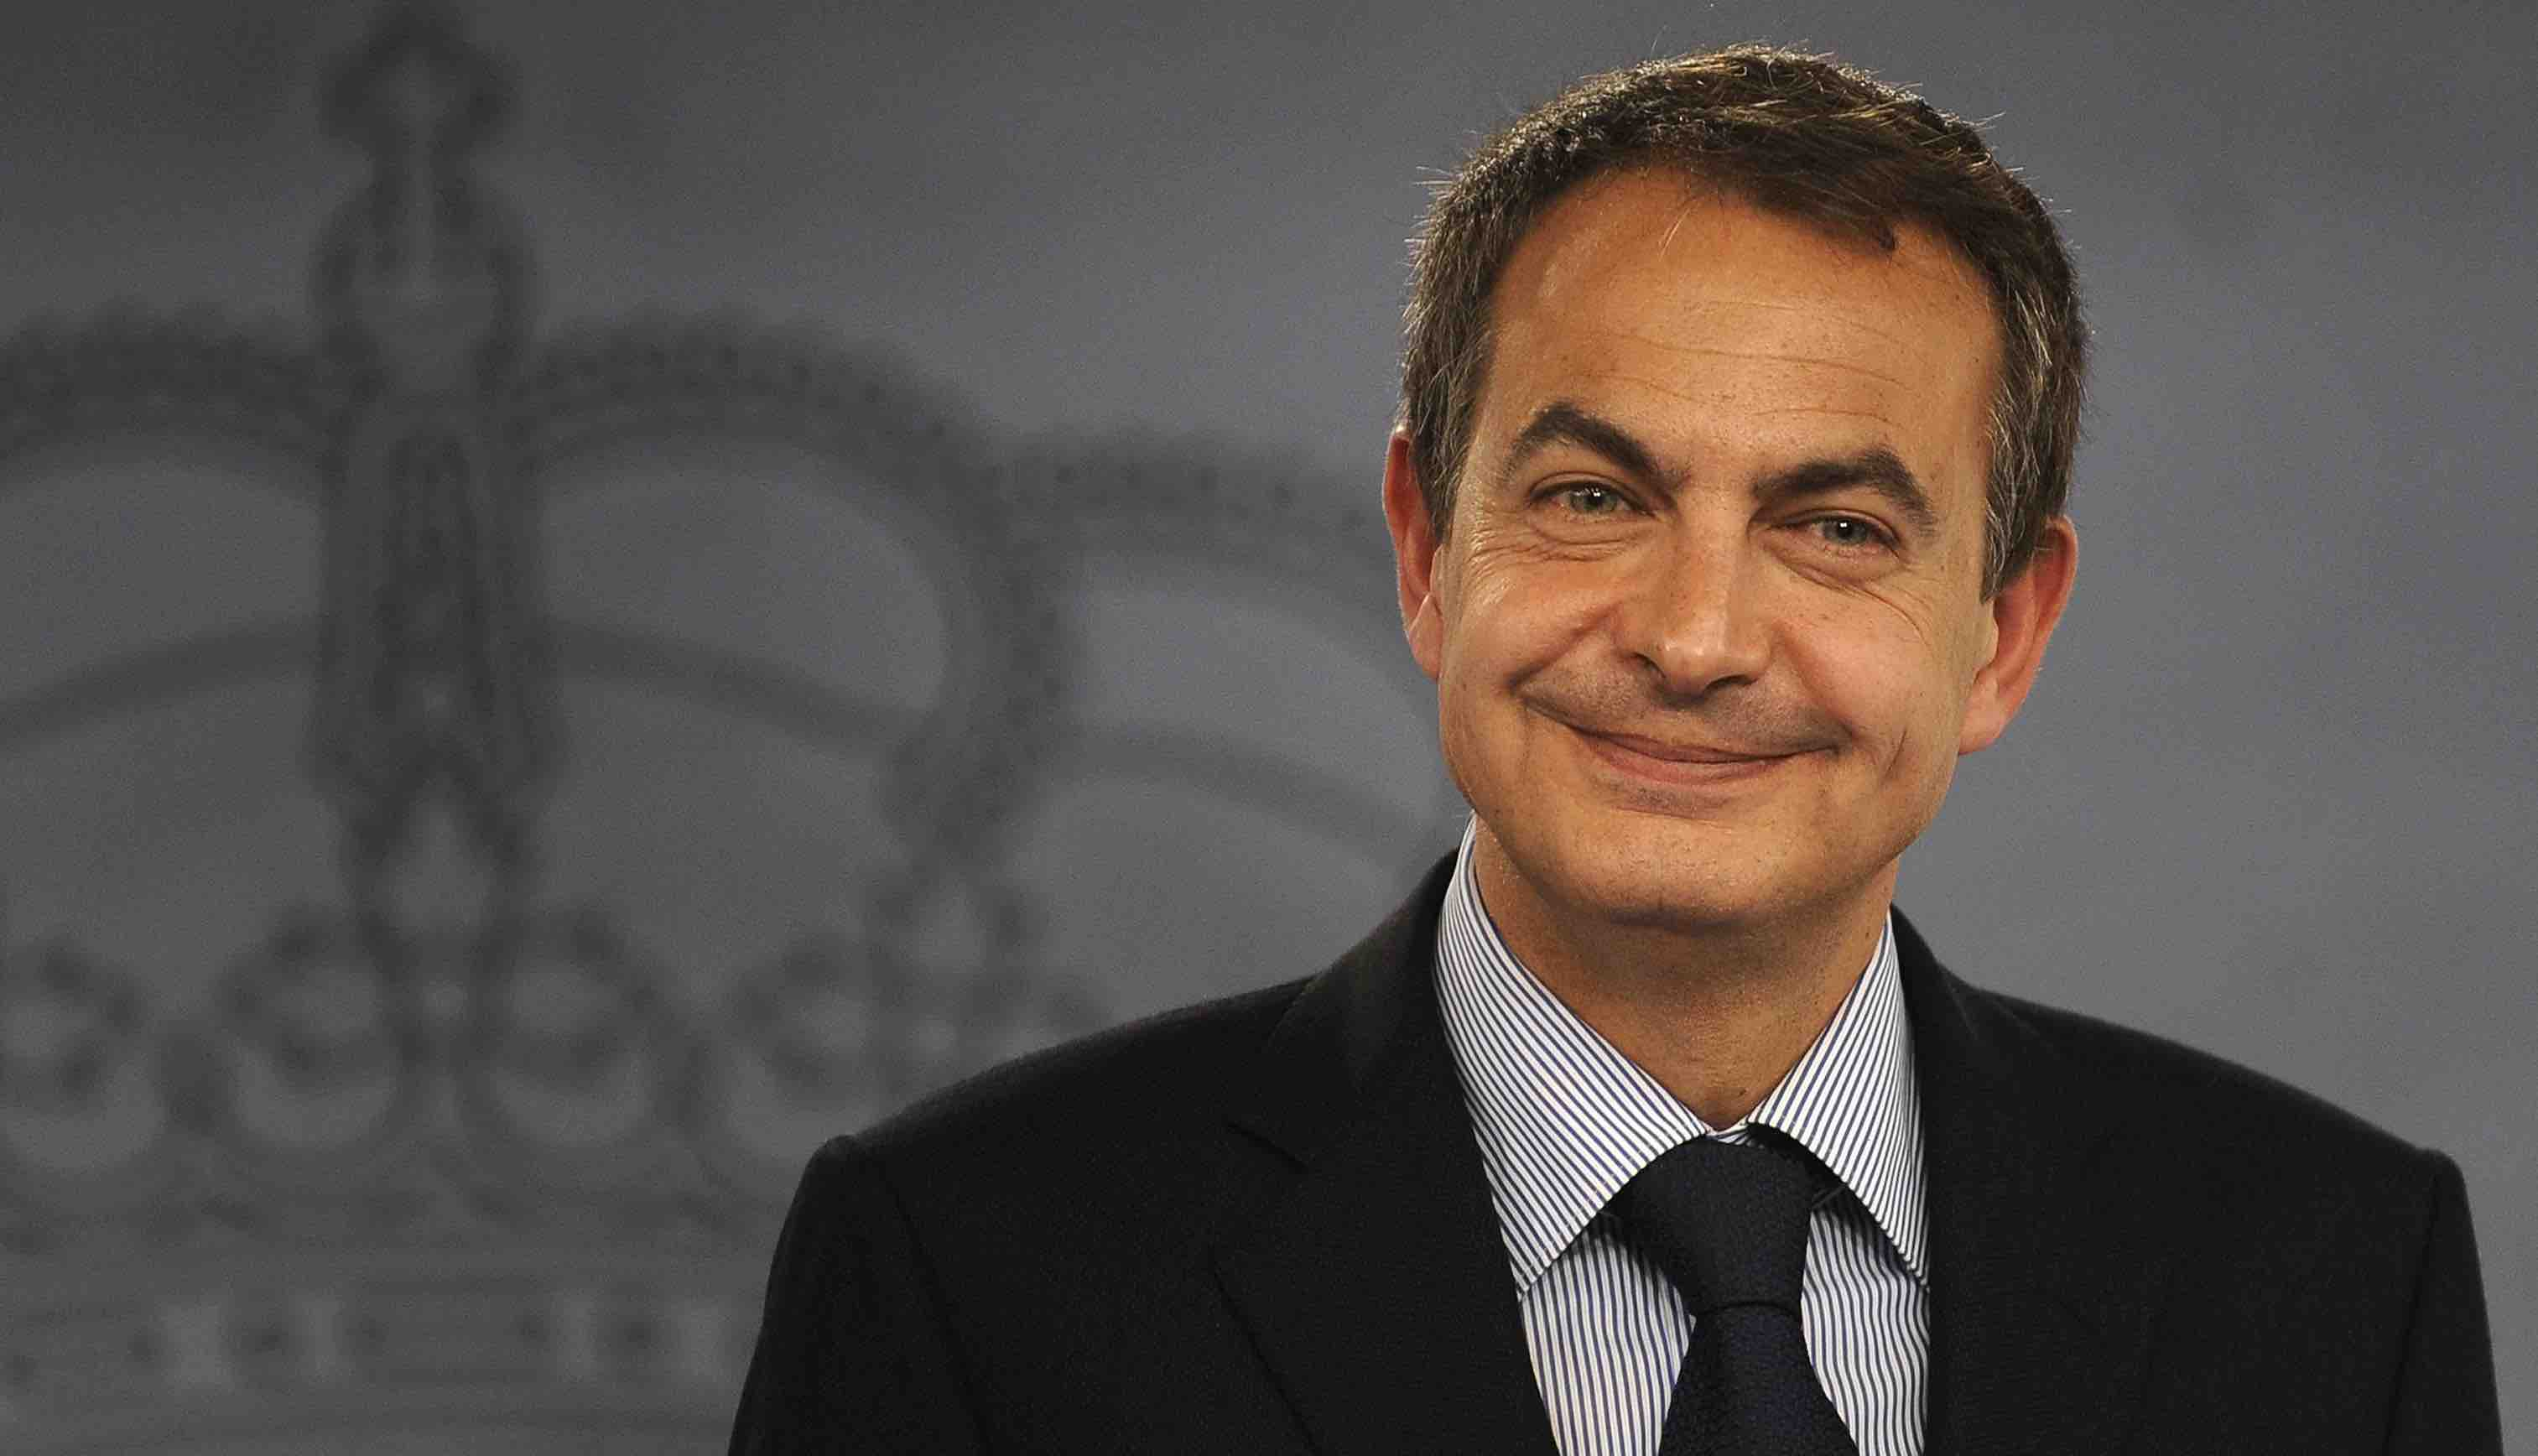 Spanish Prime Minister Jose Luis Rodriguez Zapatero gives a press conference to discuss Spain's end of year assessment at the Moncloa palace in Madrid on December 26, 2008. AFP PHOTO/Pedro ARMESTRE